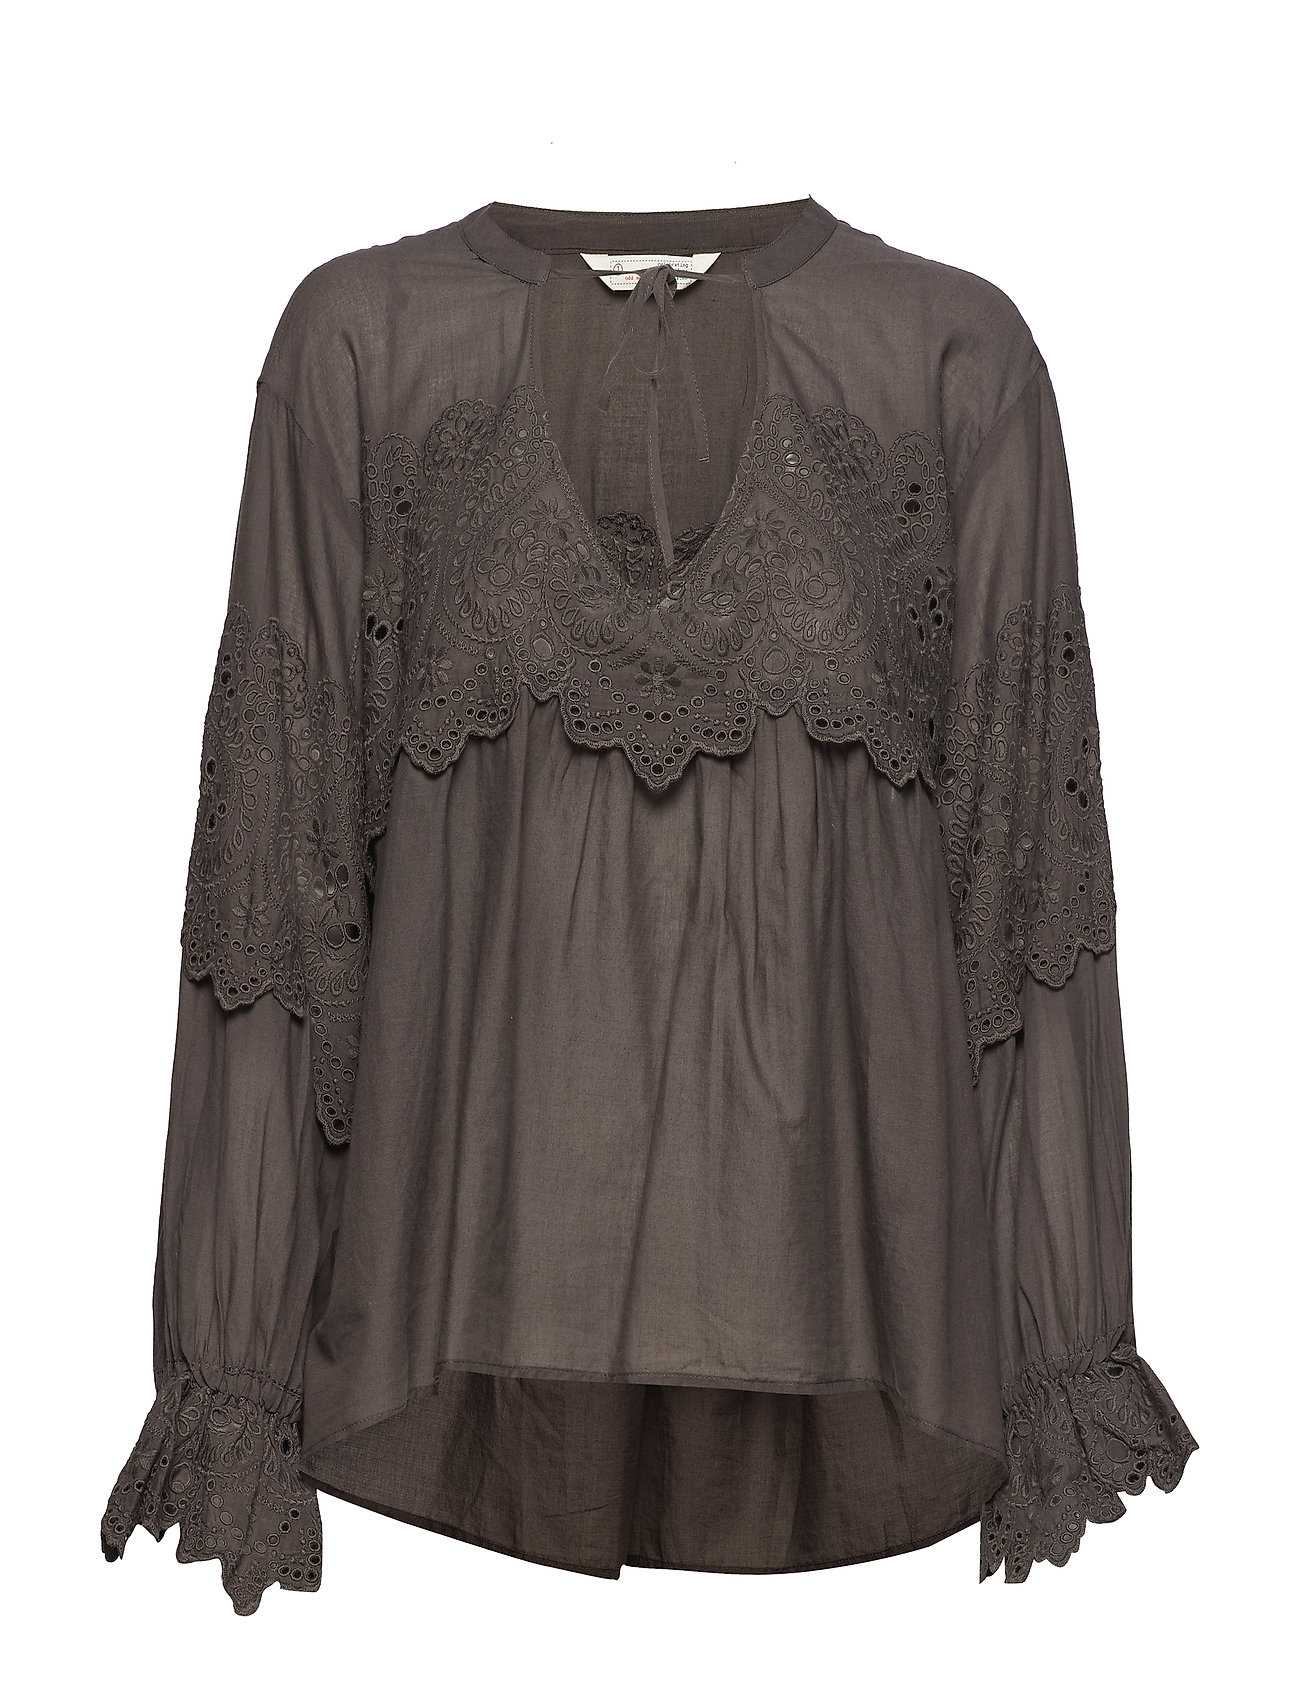 ODD MOLLY flying with love blouse - STORMY GREY